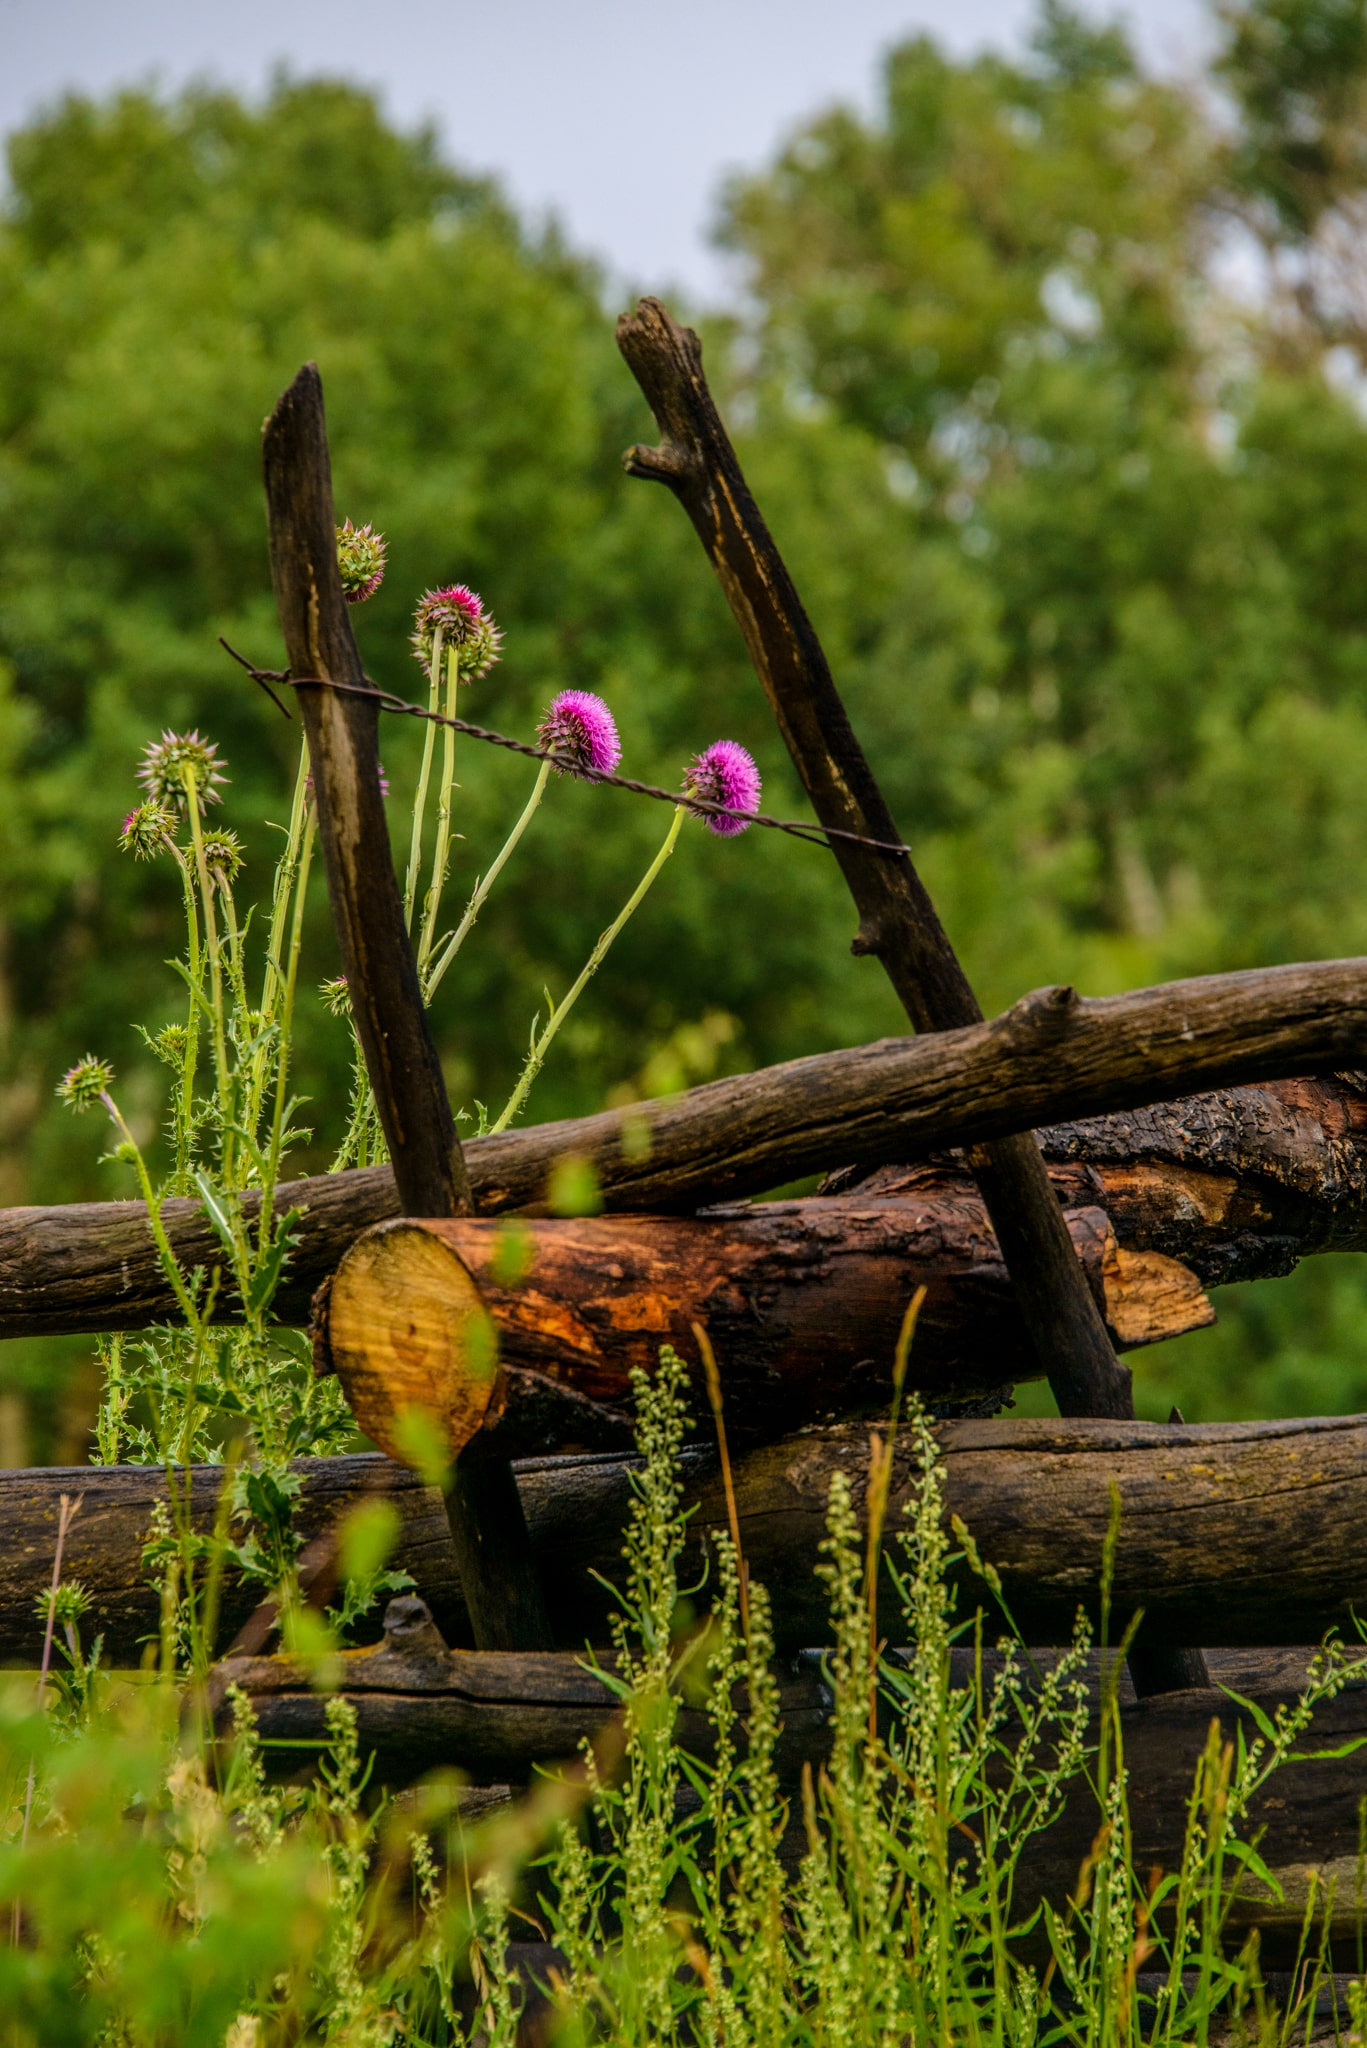 This musk thistle plant is growing through a rail fence along Sawpits Road near Telluride, Colorado.